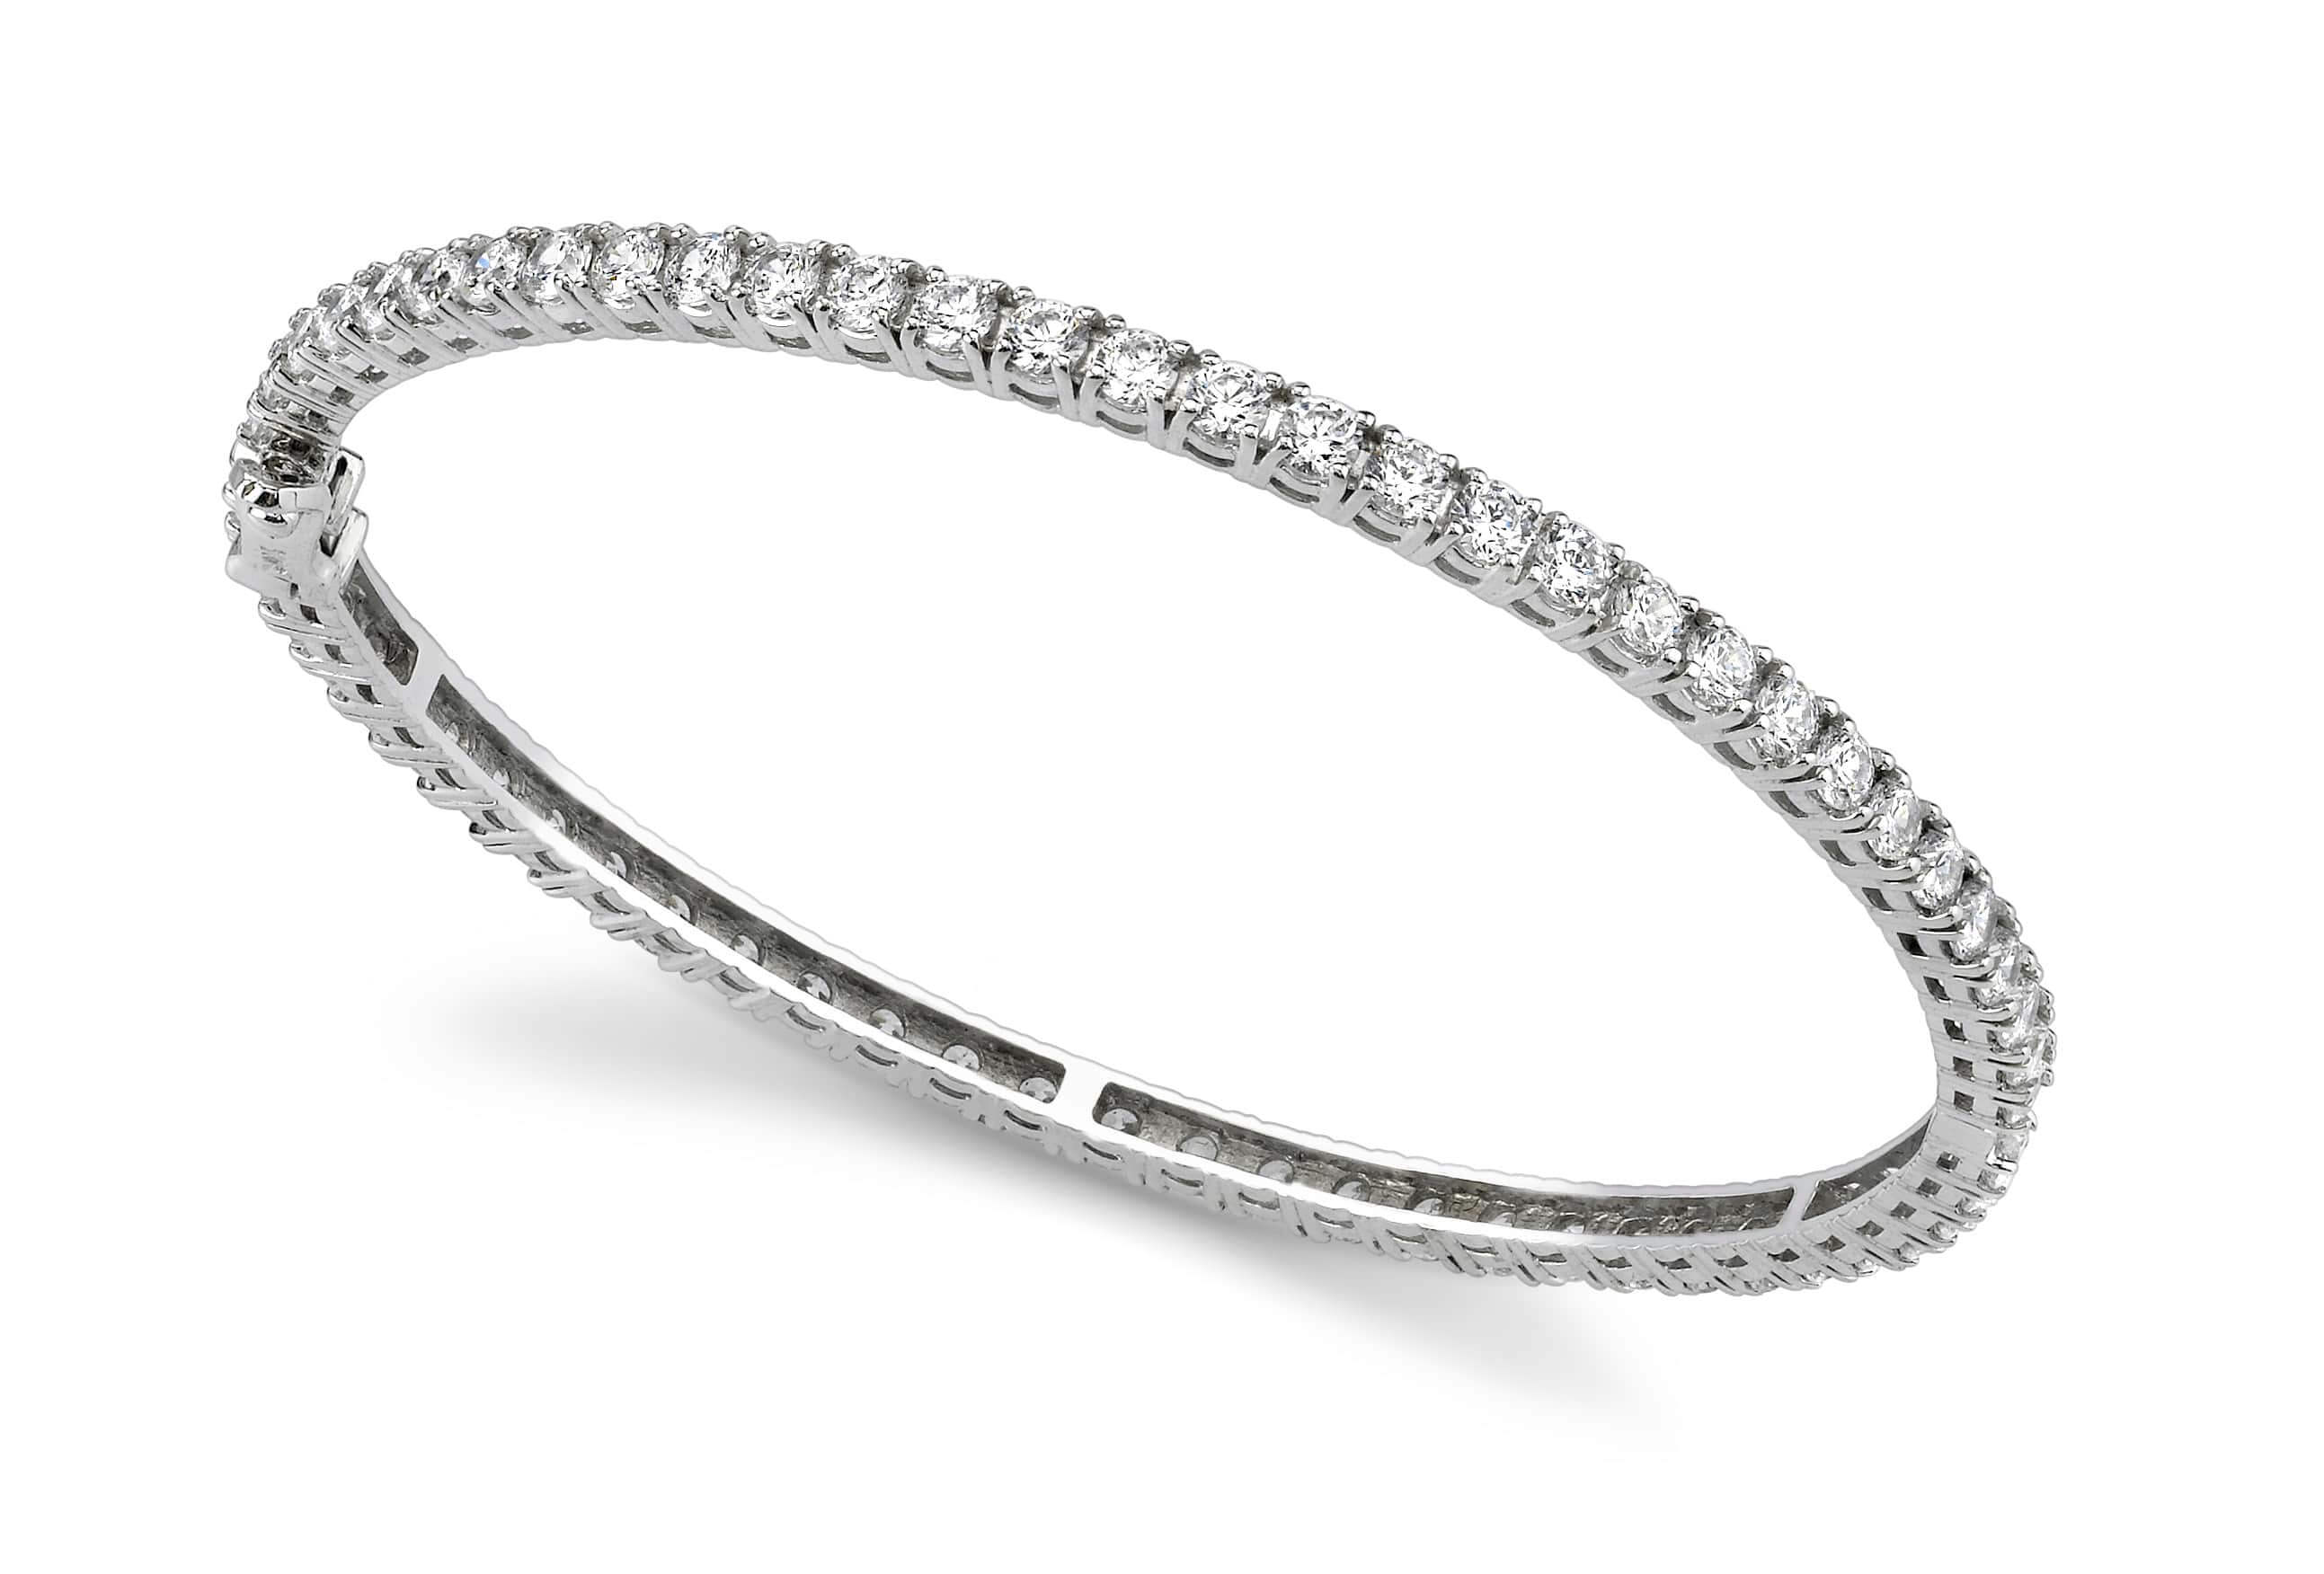 bracelet length ny bangle li with contempo diamonds diamond gold shop round pave yellow jewelers jewelry bangles white